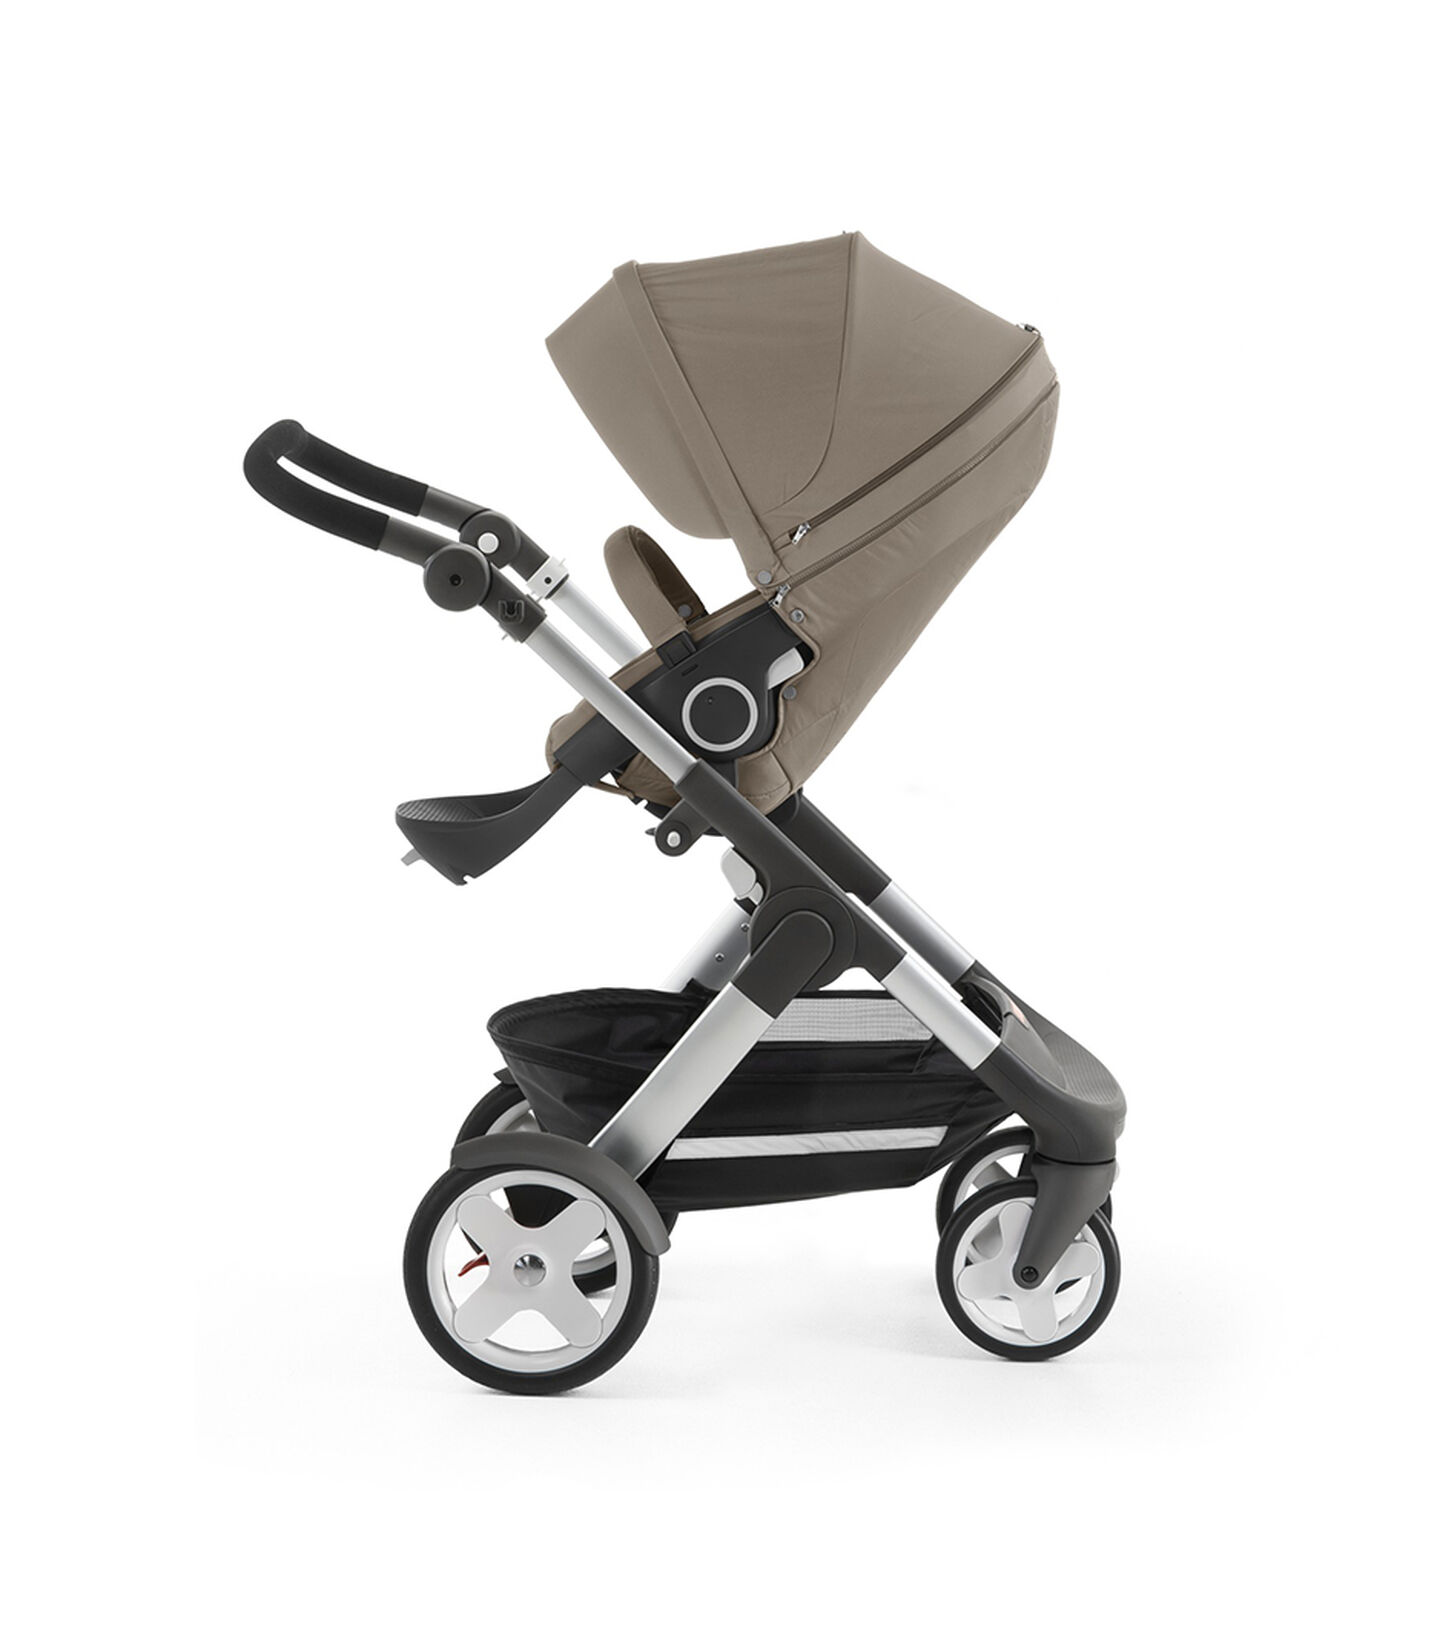 Stokke® Trailz™ with Stokke® Stroller Seat, Brown. Classic Wheels. view 2